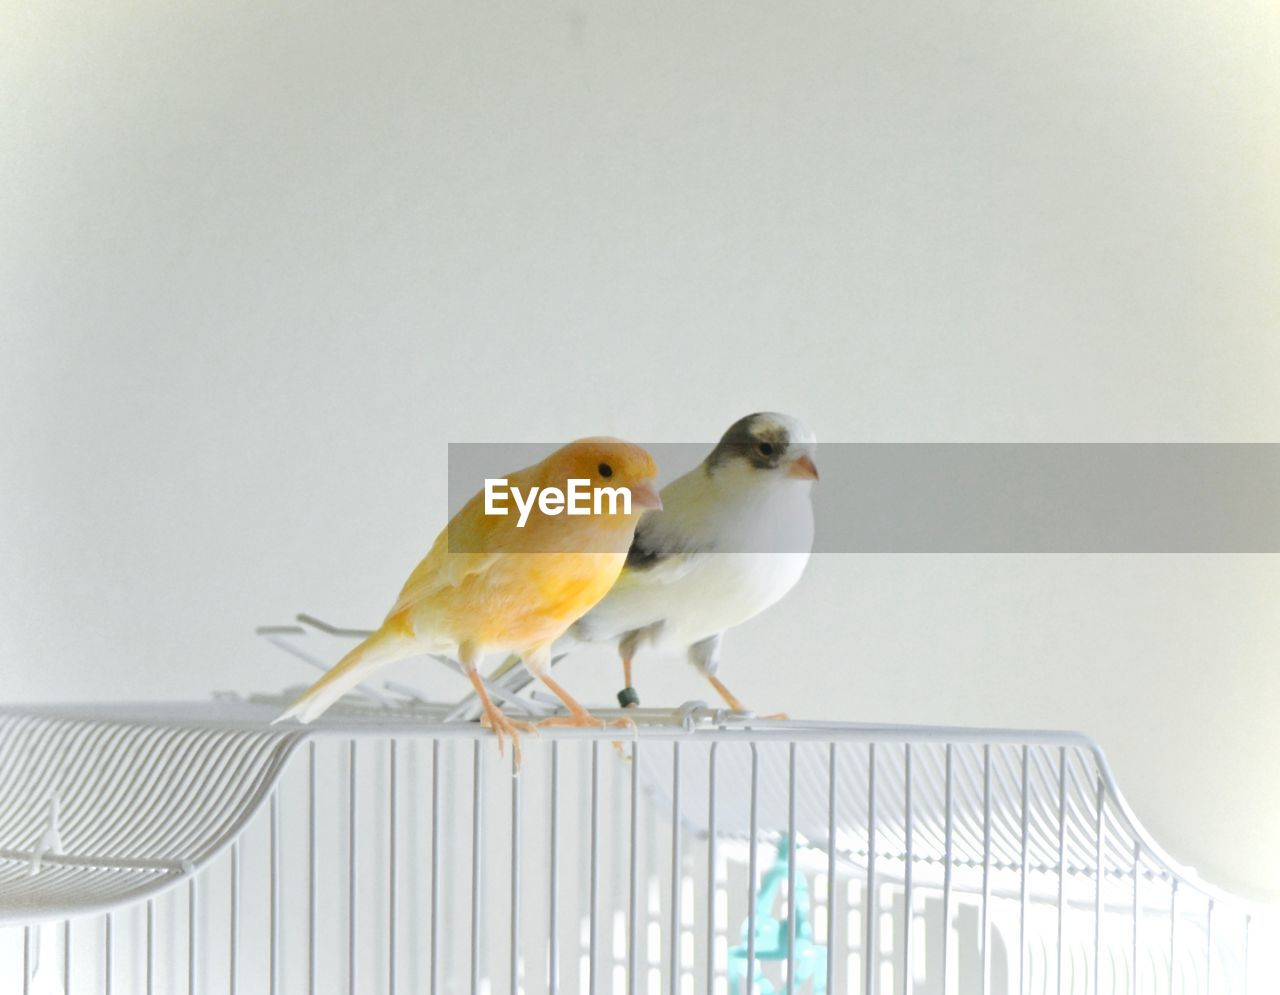 animal themes, animal, perching, bird, vertebrate, group of animals, animal wildlife, two animals, animals in the wild, railing, no people, copy space, metal, day, white color, parakeet, outdoors, nature